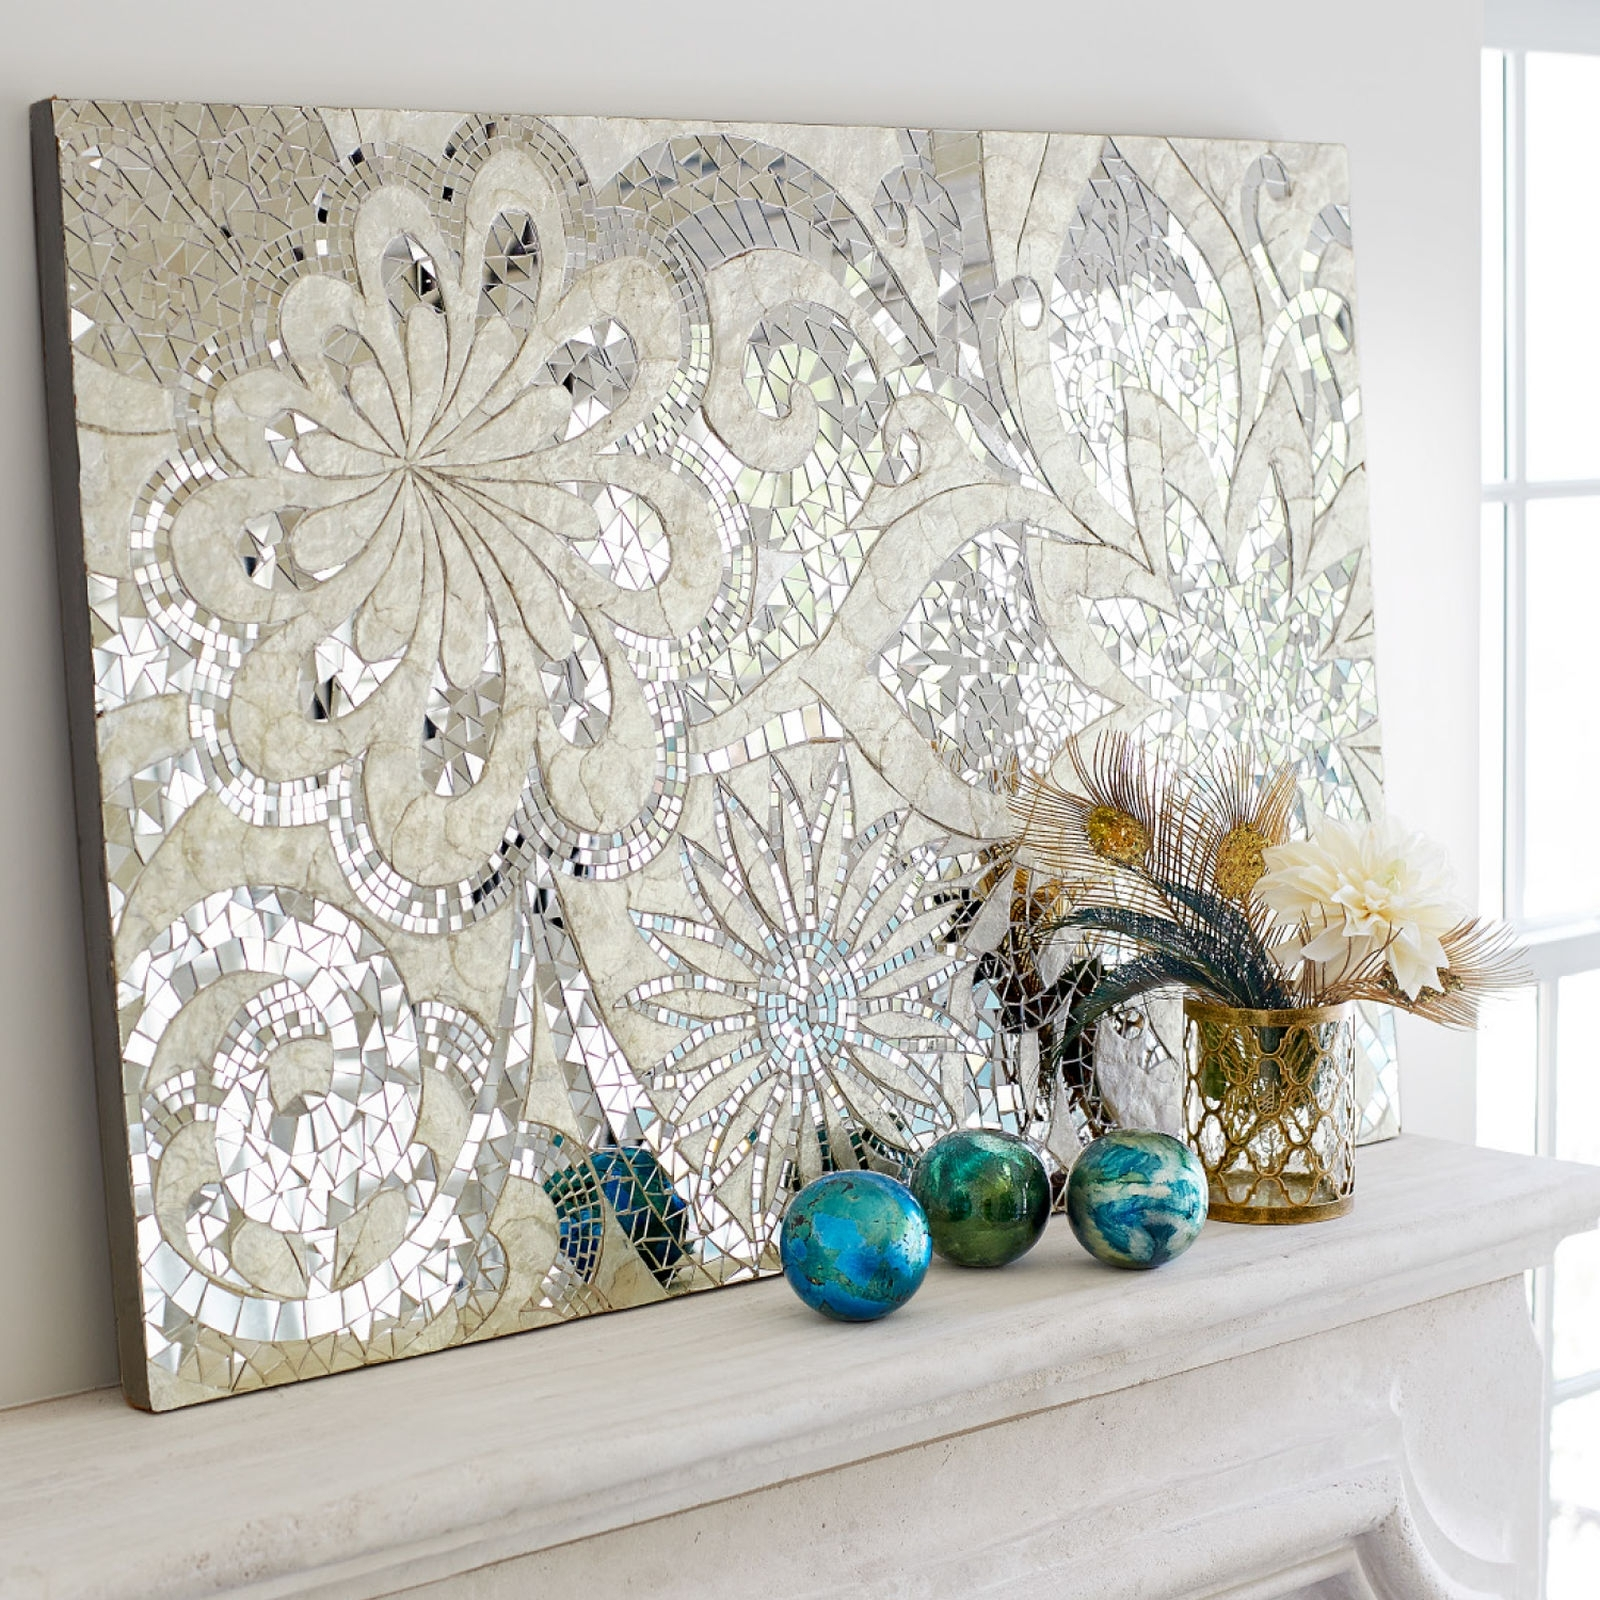 Mosaic Wall Art New Floral Capiz Panel Mirror Tiles Indonesia And throughout Mosaic Wall Art (Image 13 of 20)